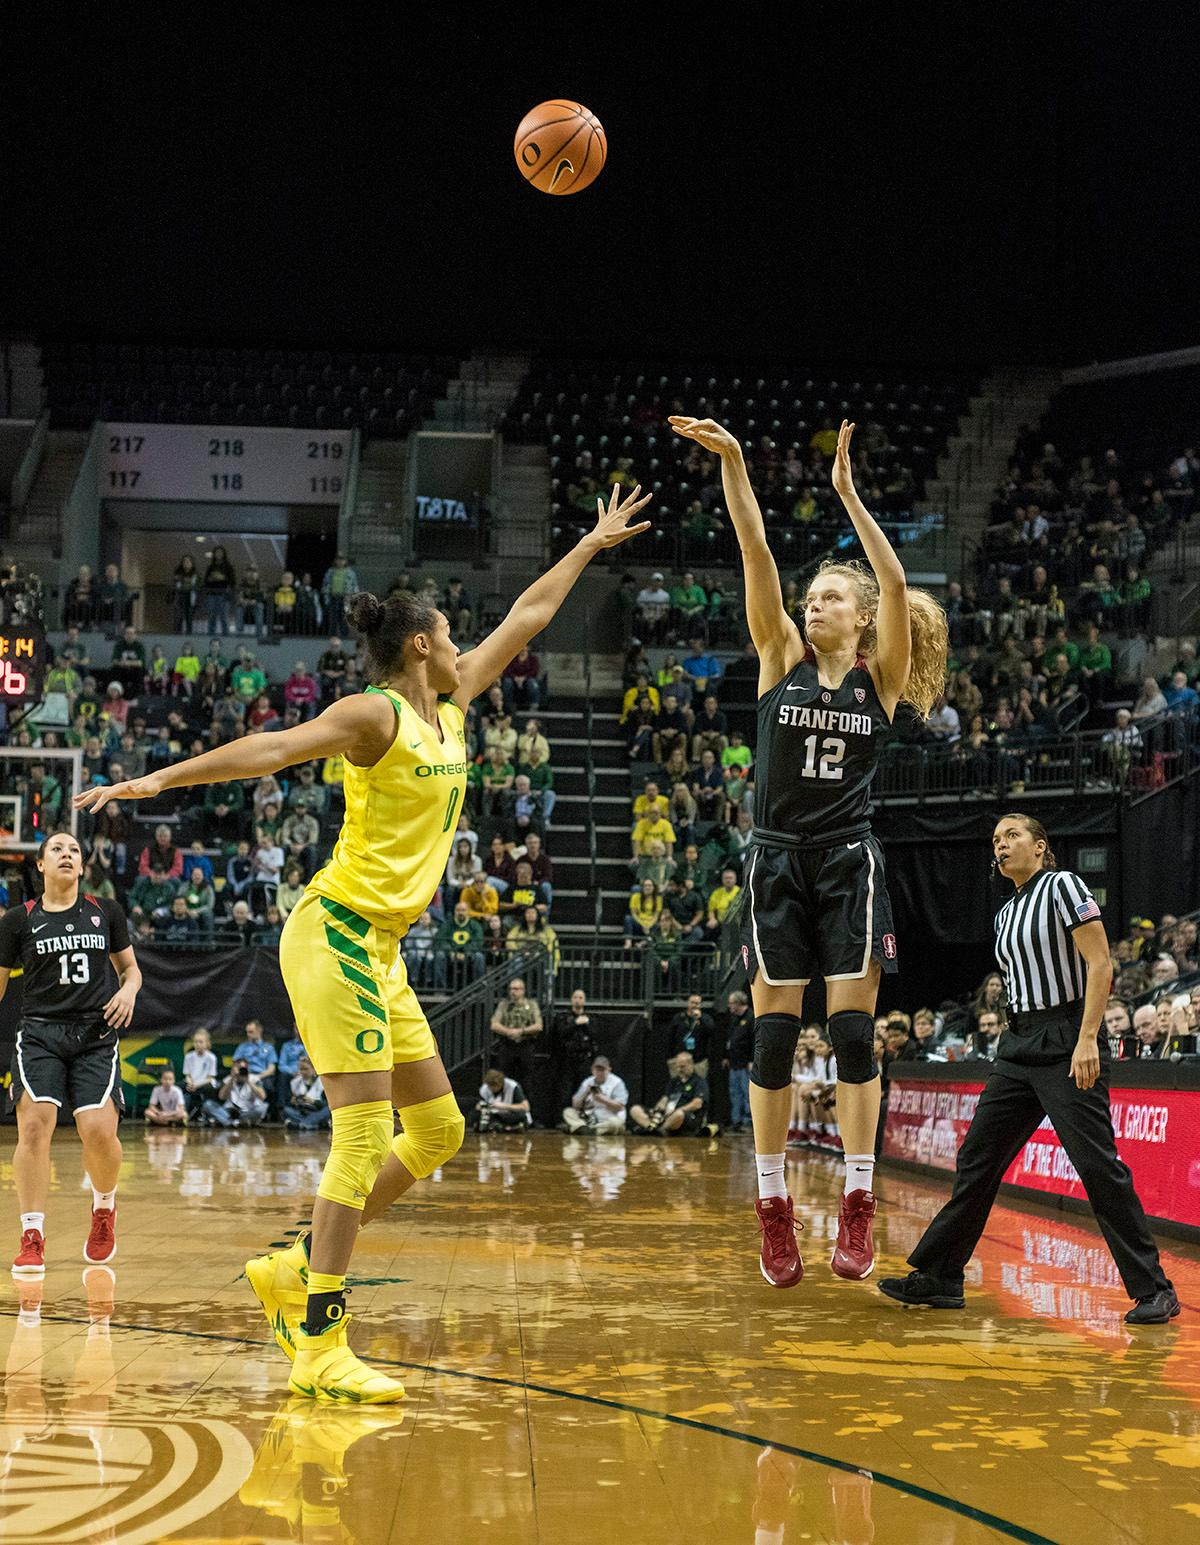 Stanford Cardinal Brittany McPhee (#12) shoots for the basket. The Stanford Cardinal defeated the Oregon Ducks 78-65 on Sunday afternoon at Matthew Knight Arena. Stanford is now 10-2 in conference play and with this loss the Ducks drop to 10-2. Leading the Stanford Cardinal was Brittany McPhee with 33 points, Alanna Smith with 14 points, and Kiana Williams with 14 points. For the Ducks Sabrina Ionescu led with 22 points, Ruthy Hebard added 16 points, and Satou Sabally put in 14 points. Photo by Rhianna Gelhart, Oregon News Lab